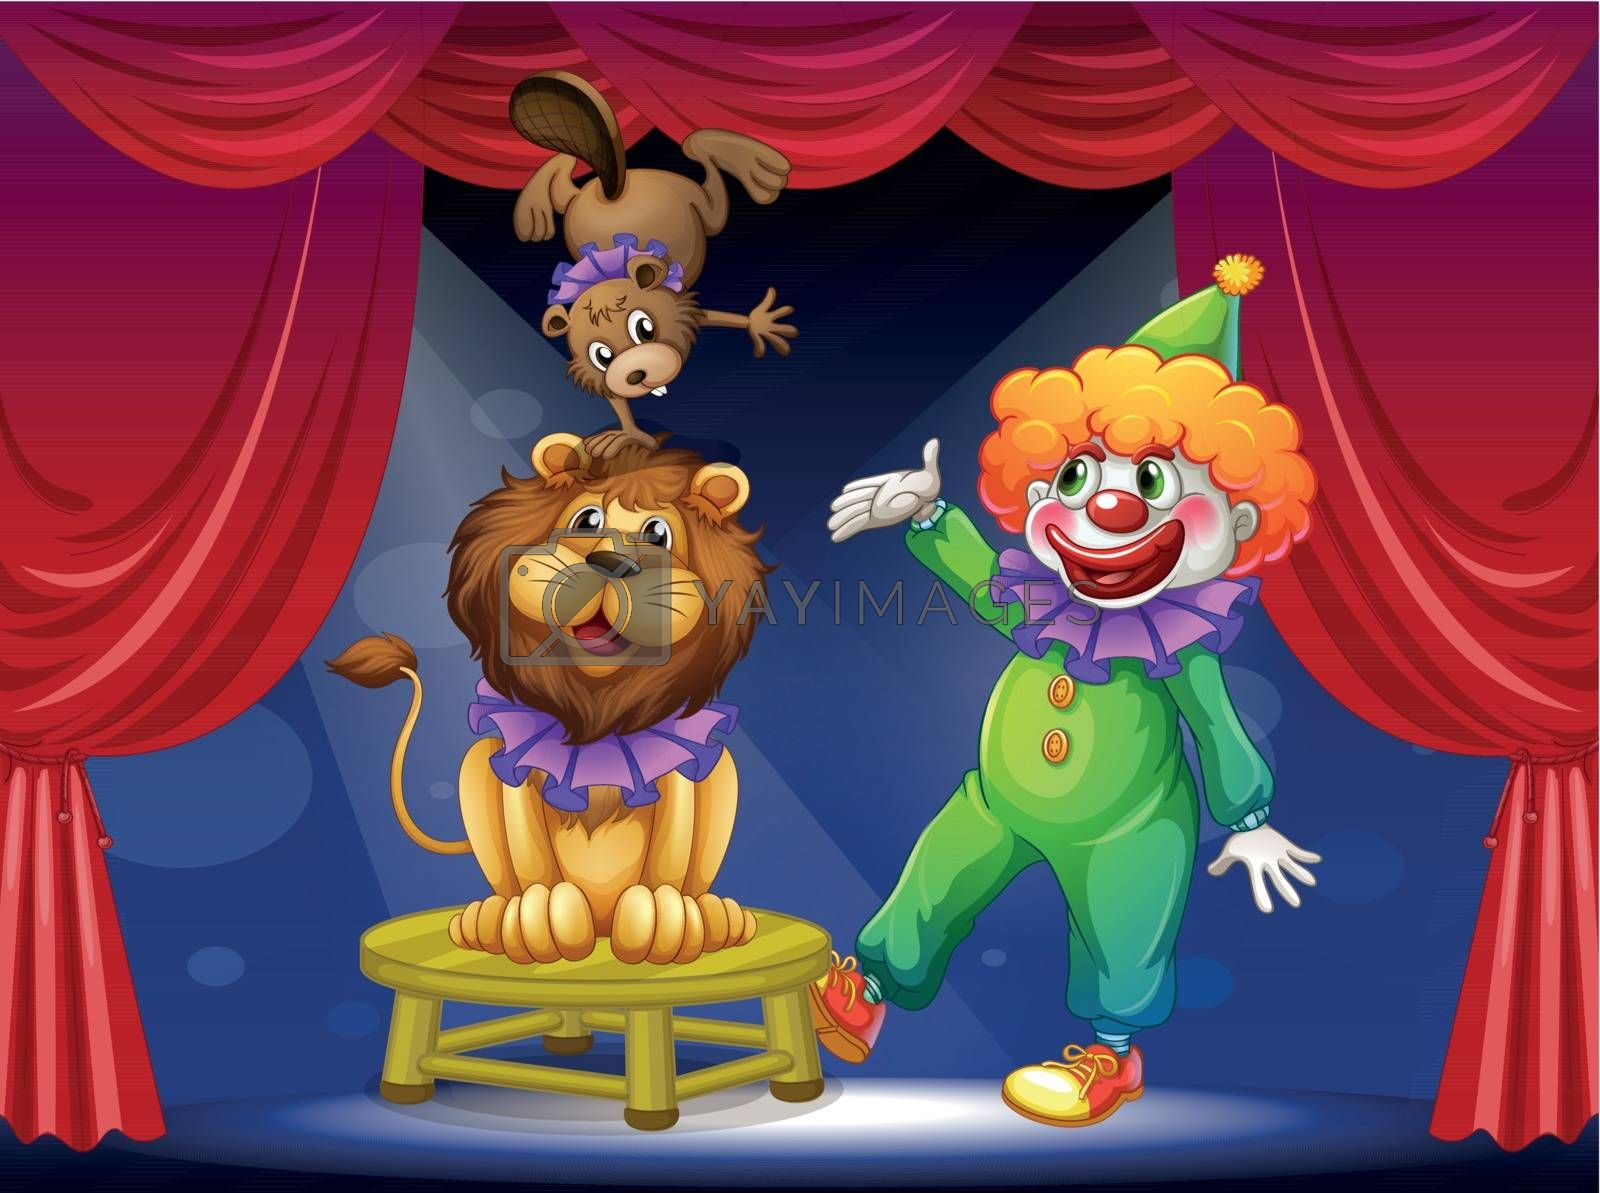 Illustration of a clown with animals at the stage